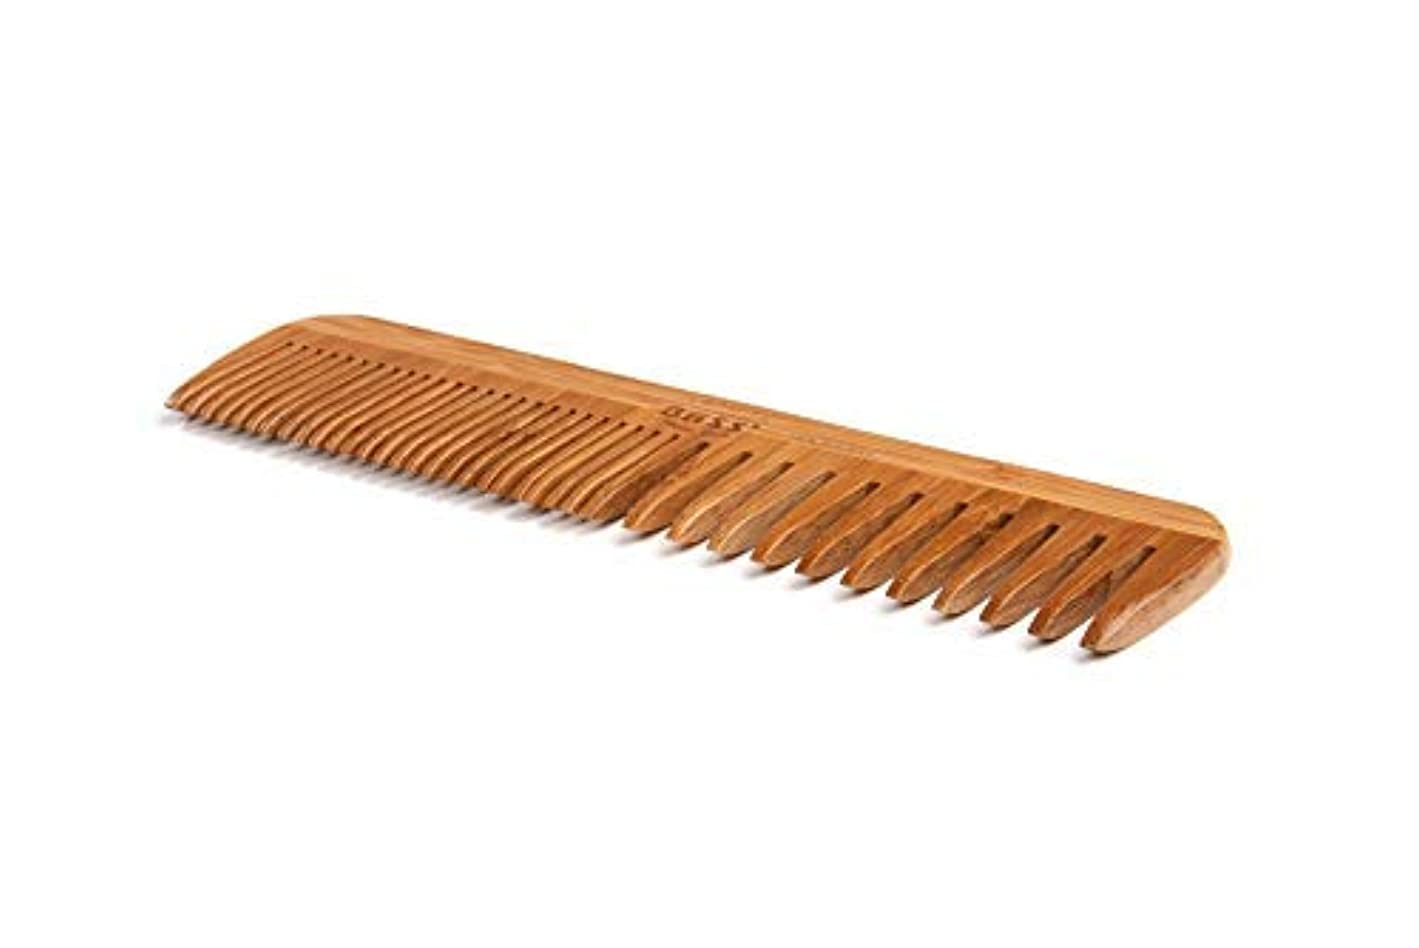 Bass Brushes   Grooming Comb   Premium Bamboo Teeth and Handle   Wide Tooth/Fine Tooth Combination   Dark Finish...